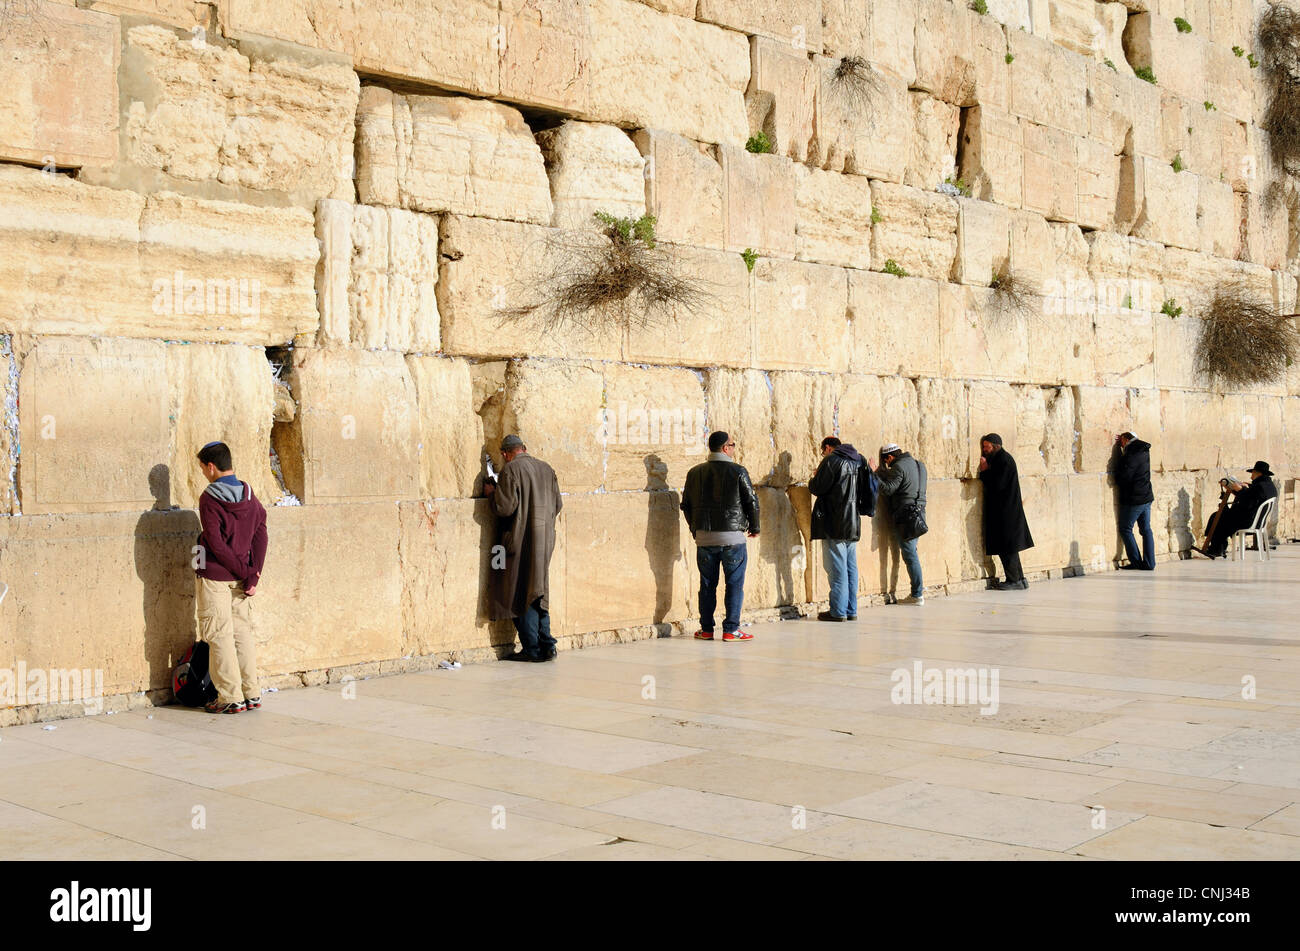 Men at the Western Wall, a Jewish Holy site in Jerusalem, Israel. - Stock Image